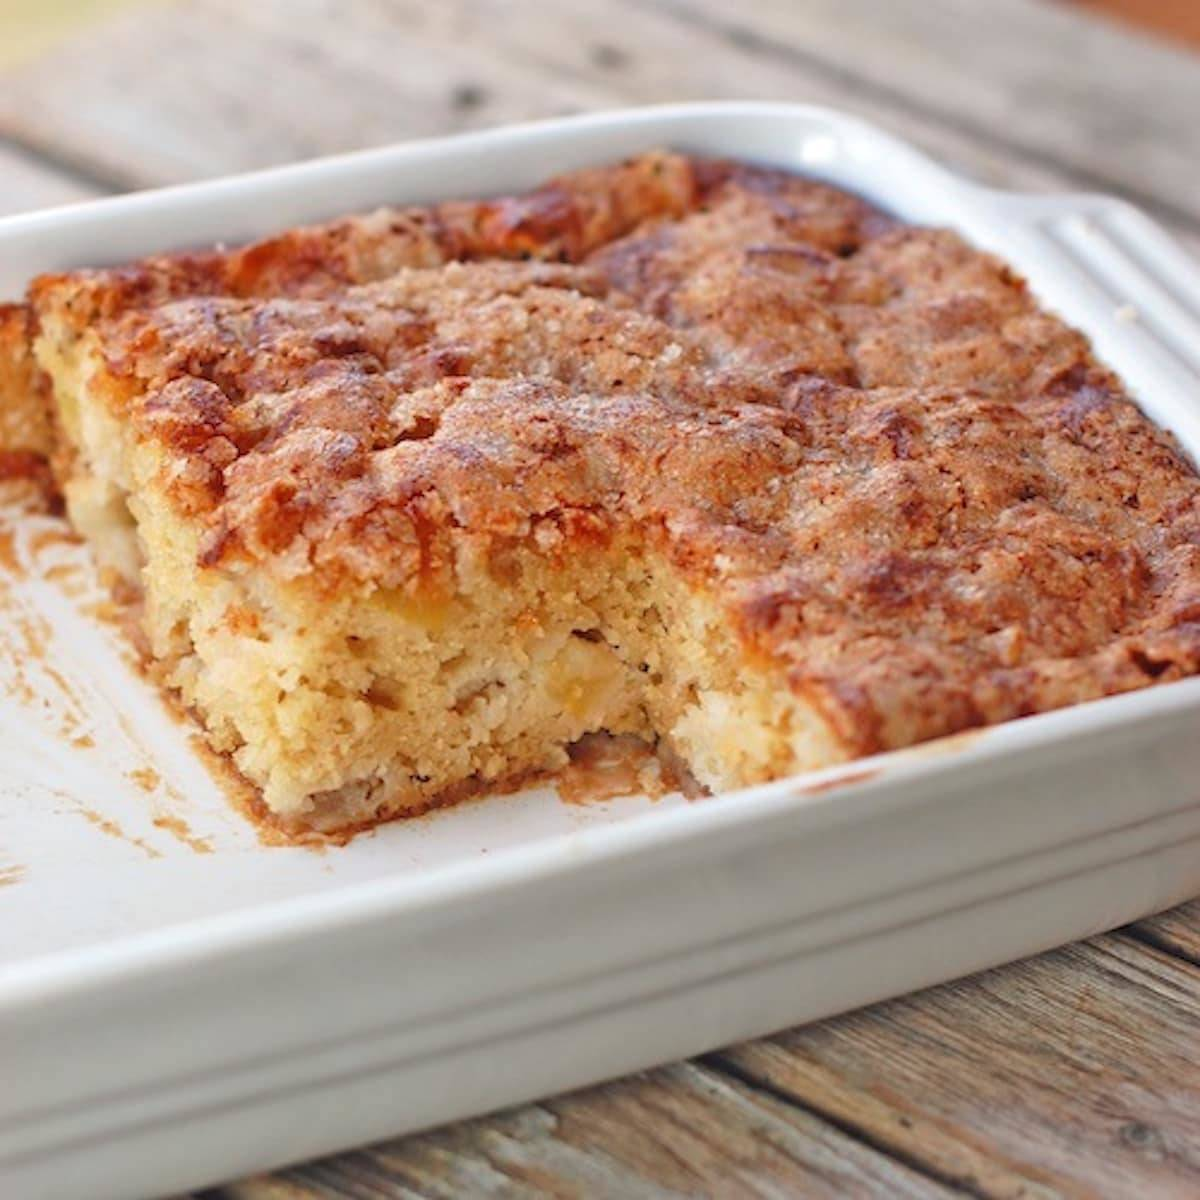 This Simple Cinnamon Sugar Apple Cake Is Light And Fluffy Loaded With Fresh Apples